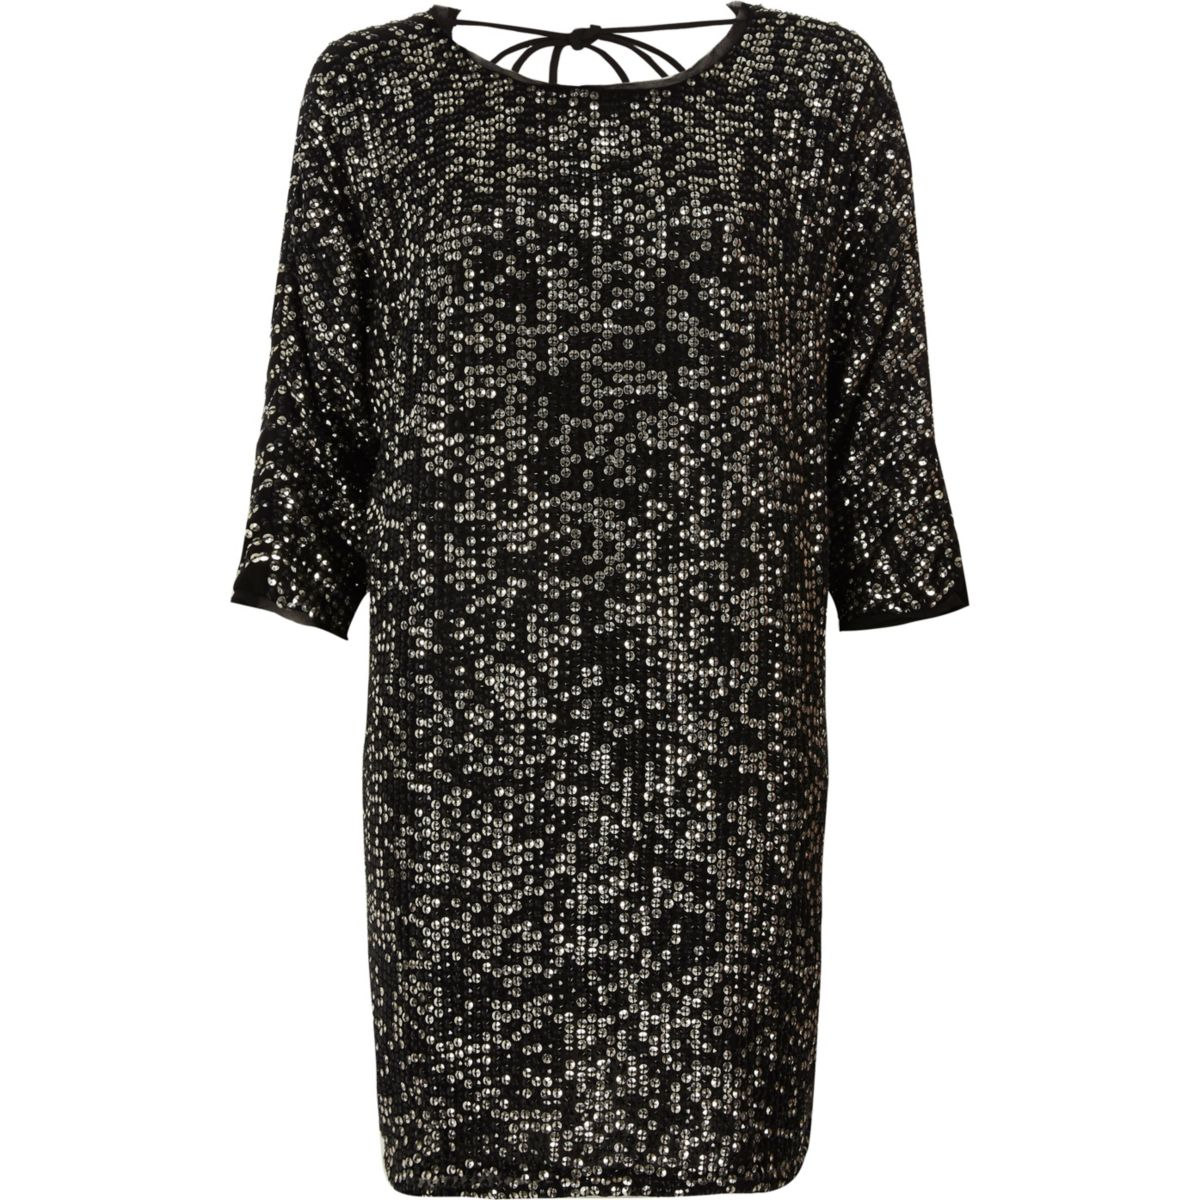 Black sequin embellished T-shirt shift dress